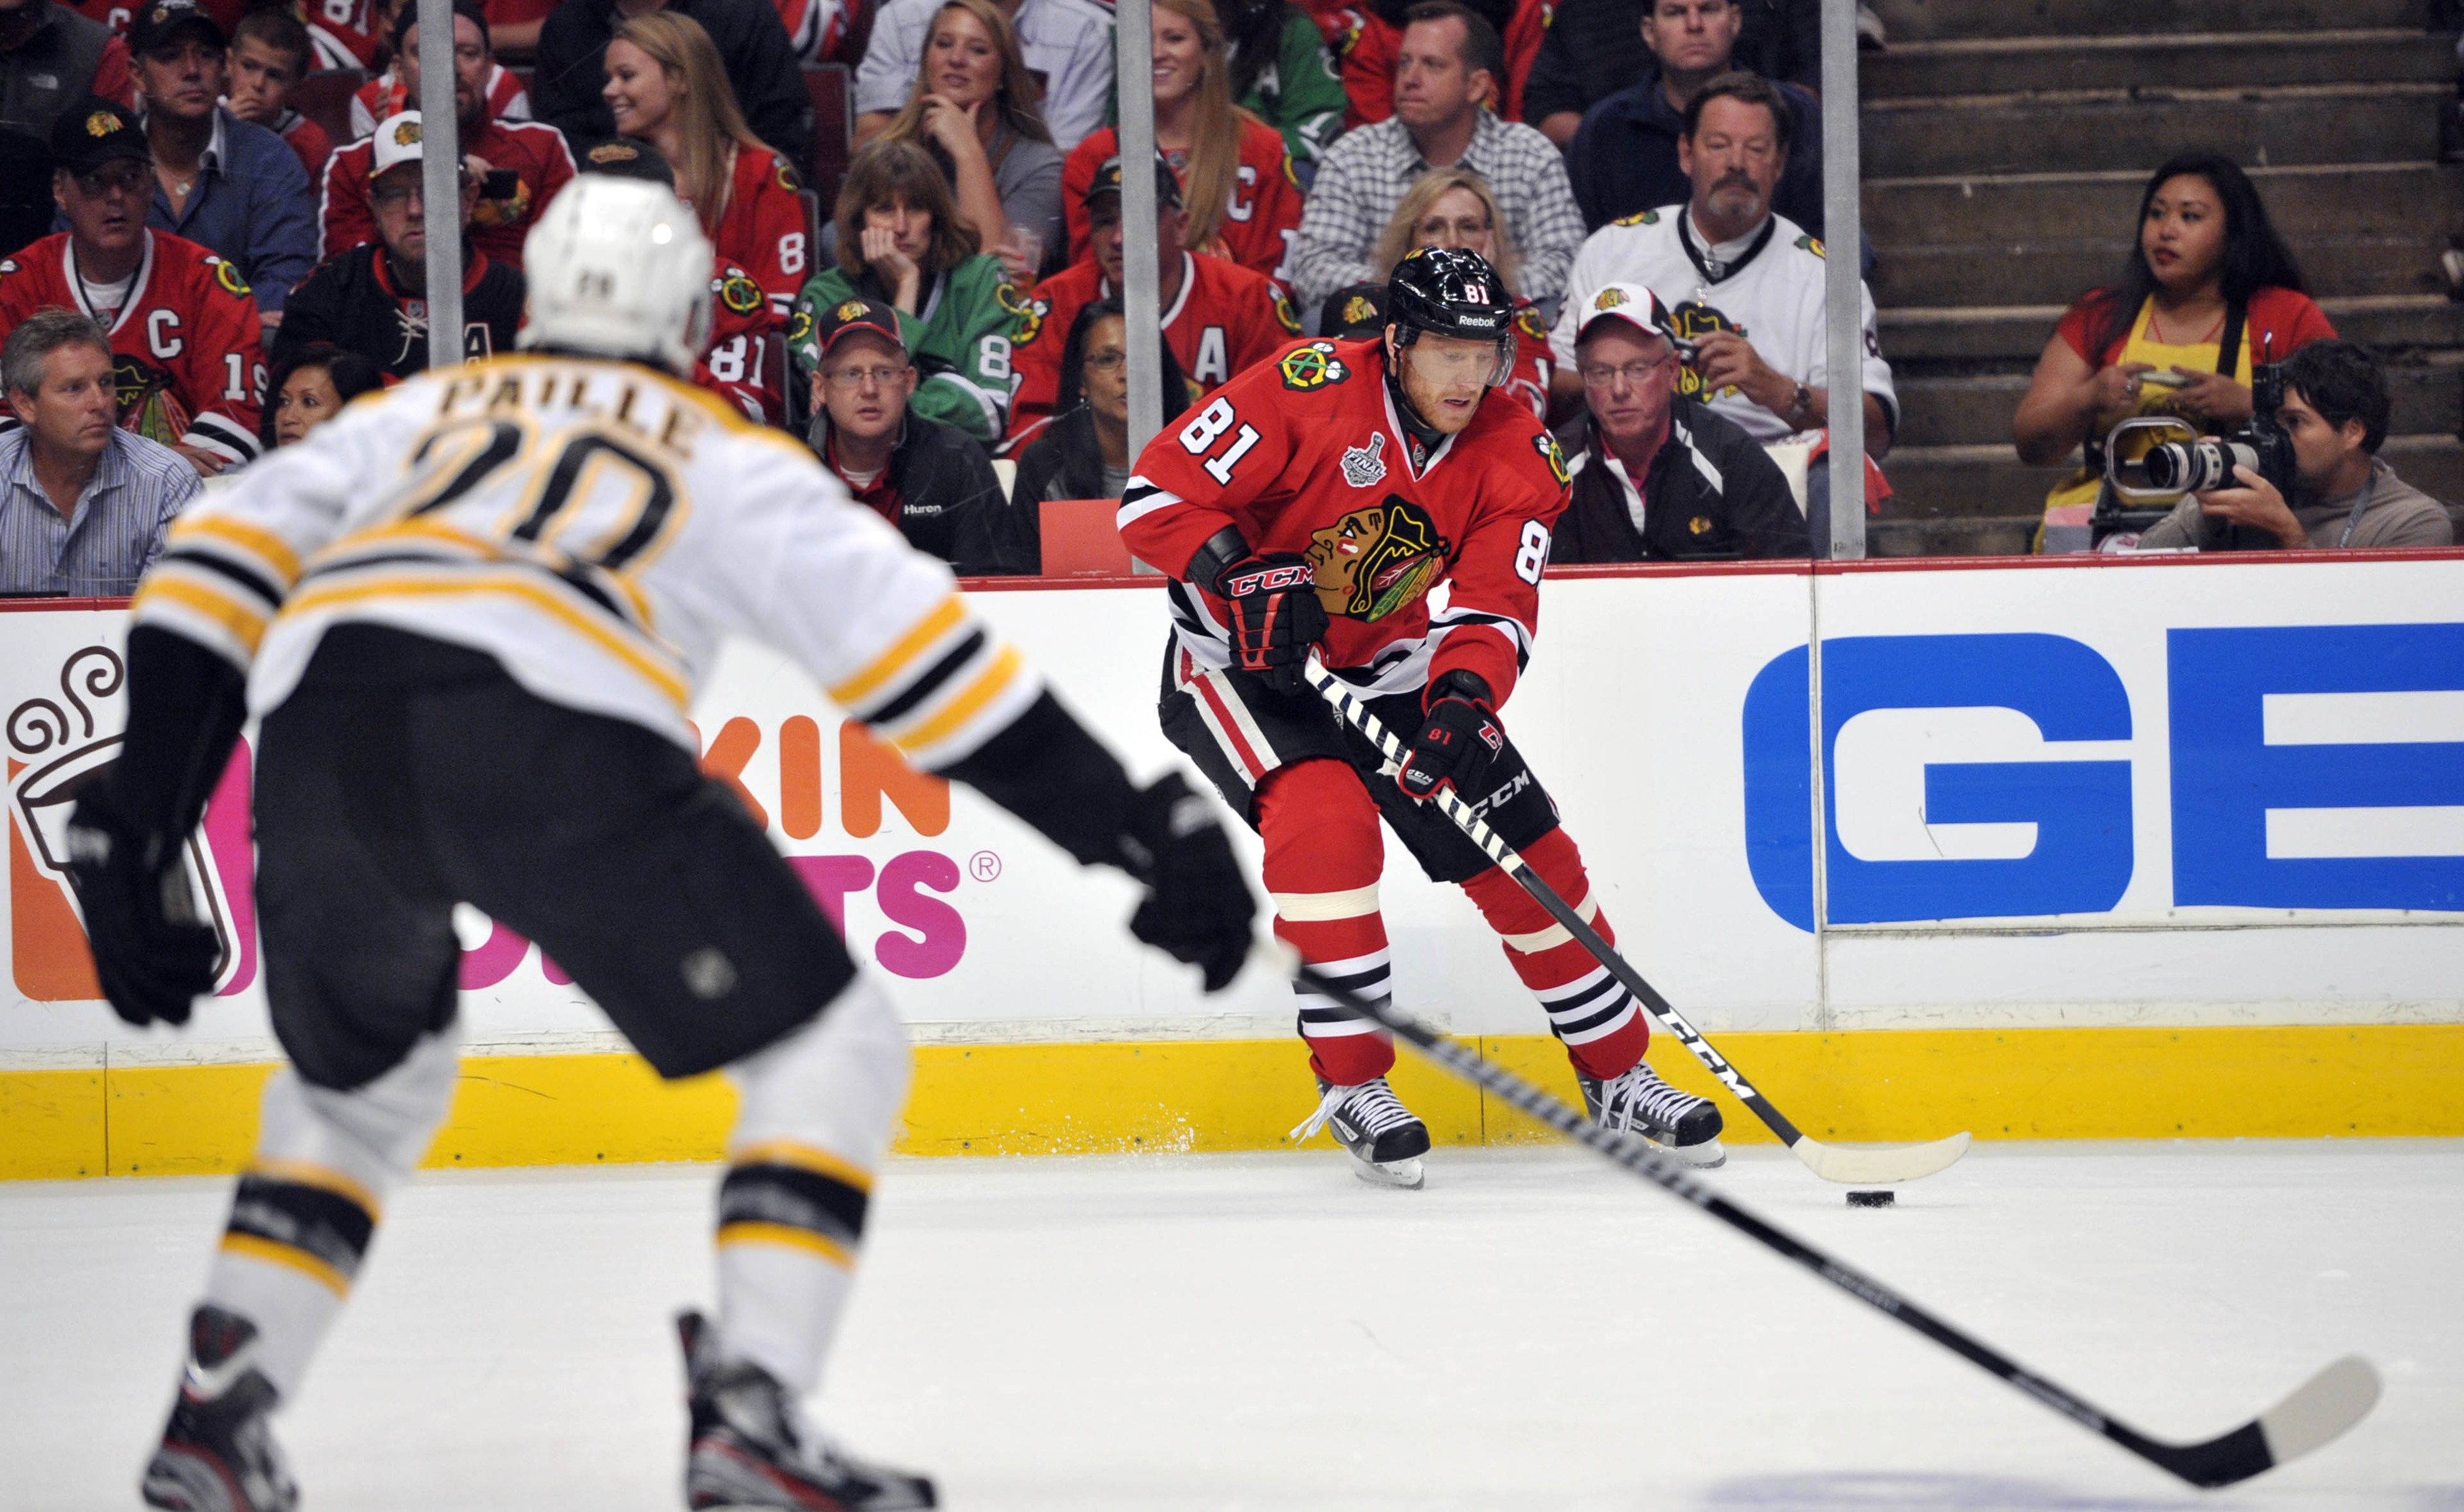 Stanley Cup Final 2013: Marian Hossa 'expected' to play, Jonathan Toews reunited with Patrick Kane